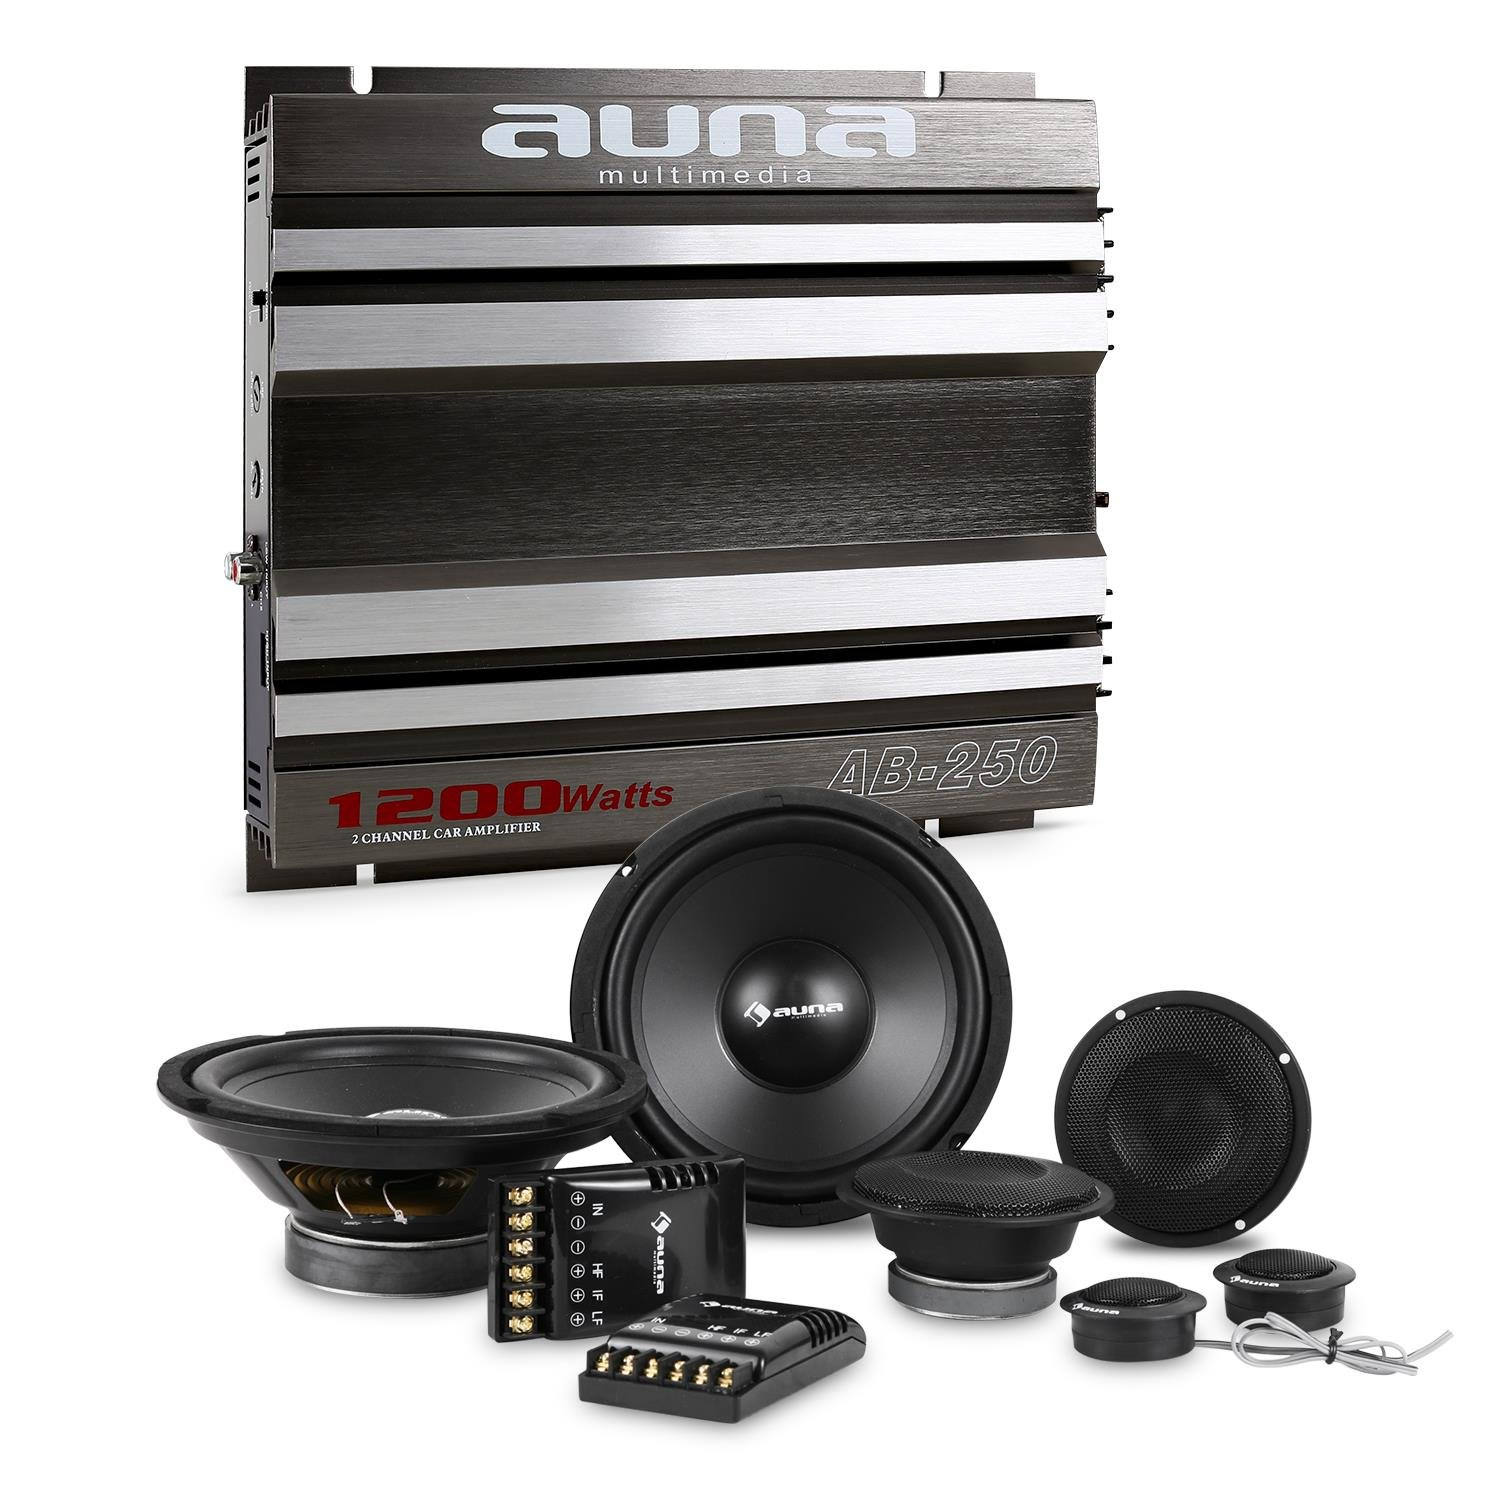 electronic star auna CS-Comp-8 Set HiFi Tuning Voiture (Enceintes, amplificateur 2 canaux, 2 x subwoofers 1 200 Watts et 2 x mé diums de 1 200 Watts) 2 x subwoofers 1 200 Watts et 2 x médiums de 1 200 Watts) PL-5698-1277